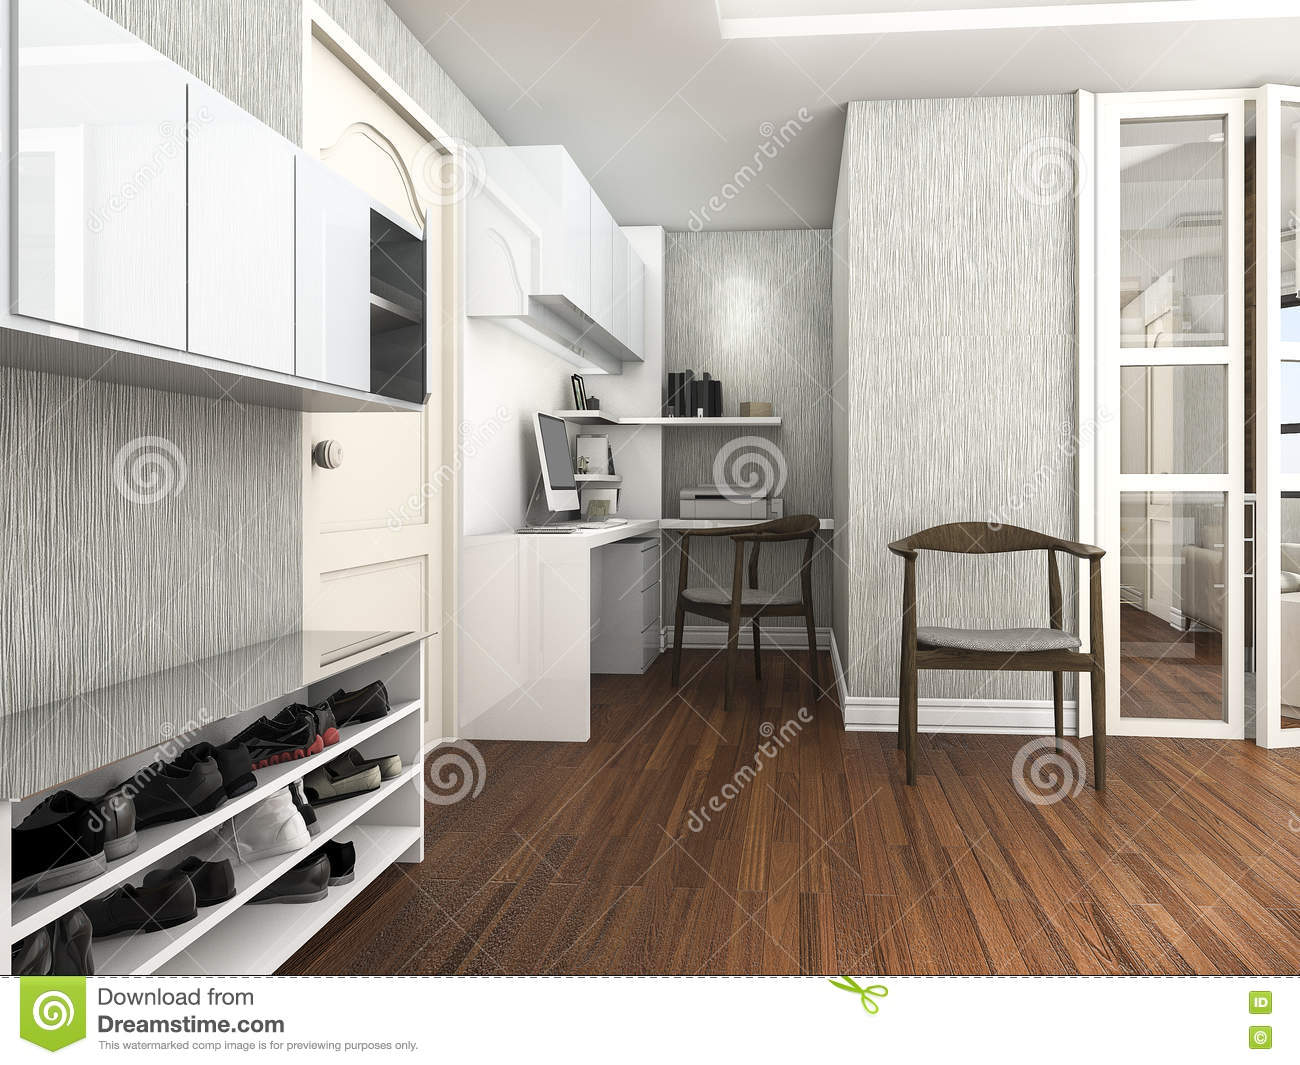 Phenomenal 3D Rendering Working And Living Room With Shoes Cabinet Download Free Architecture Designs Scobabritishbridgeorg